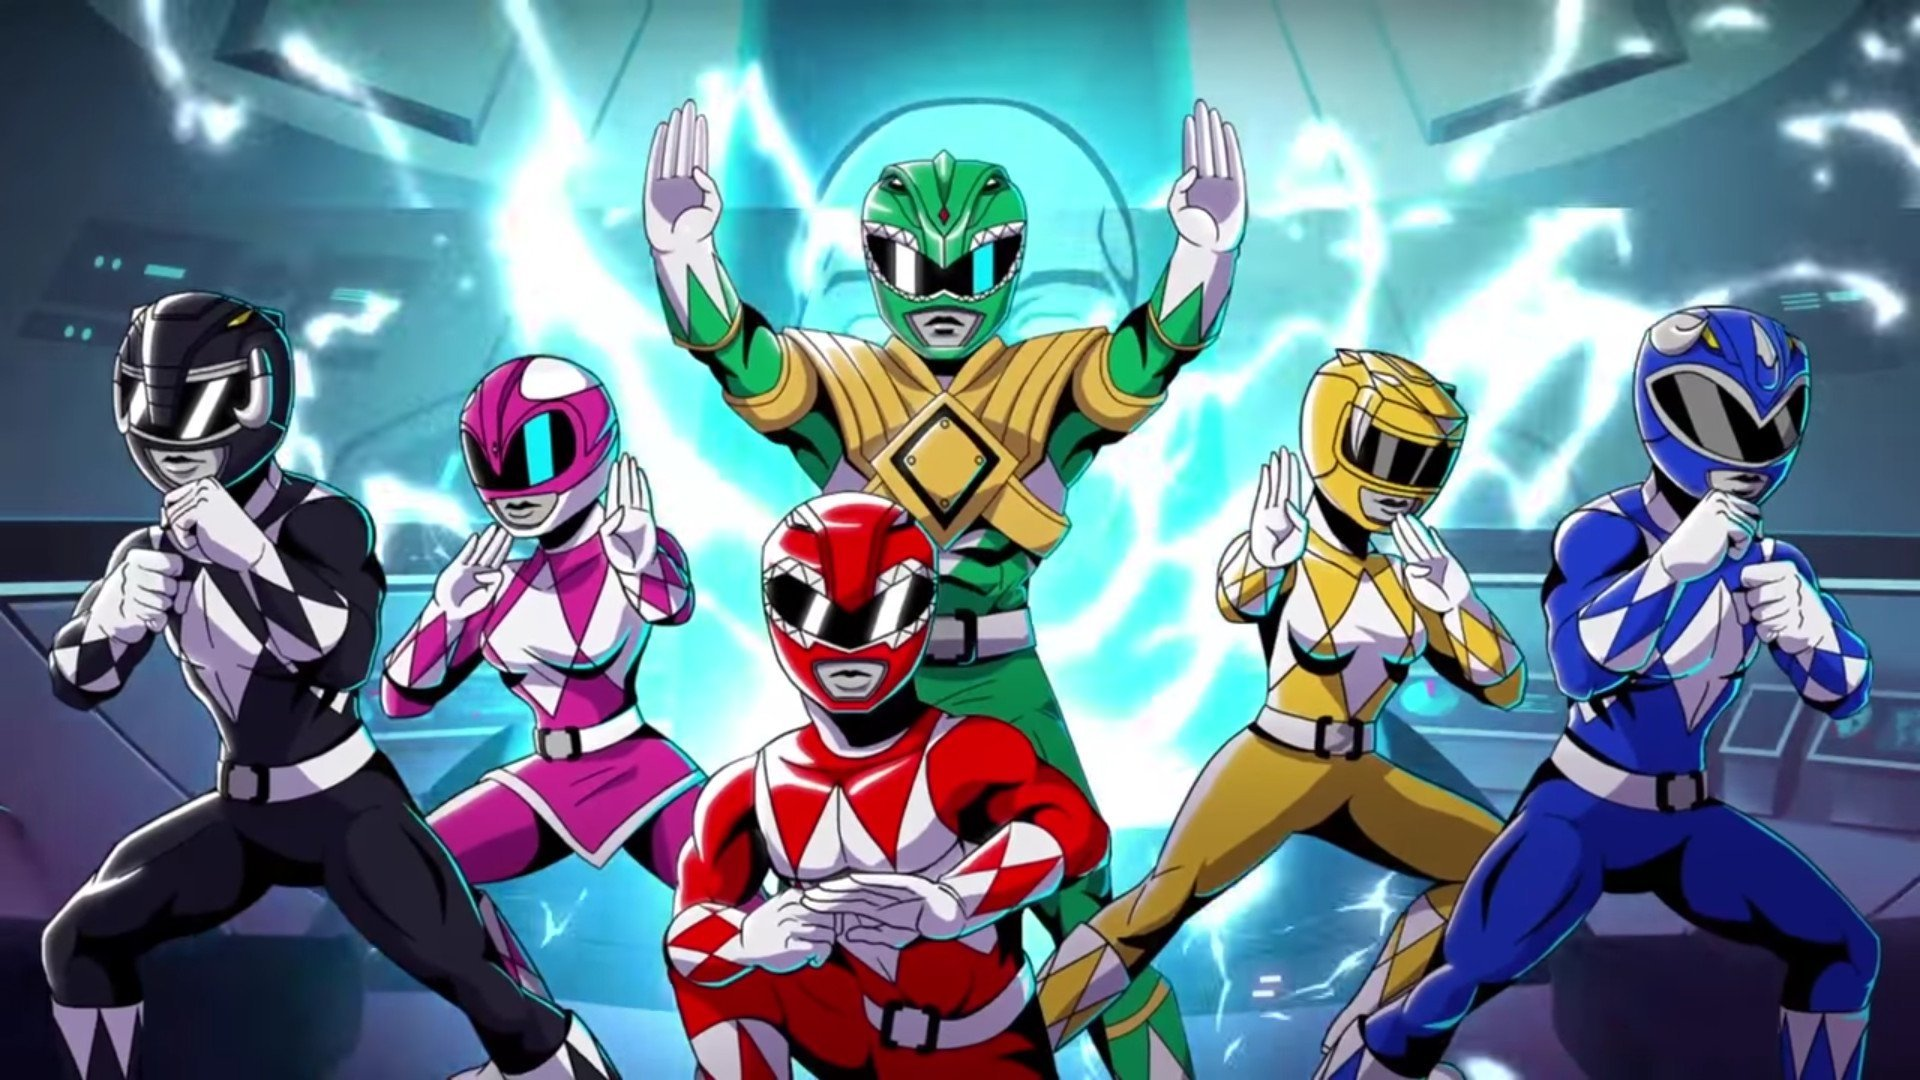 1 mighty morphin power rangers: mega battle hd wallpapers